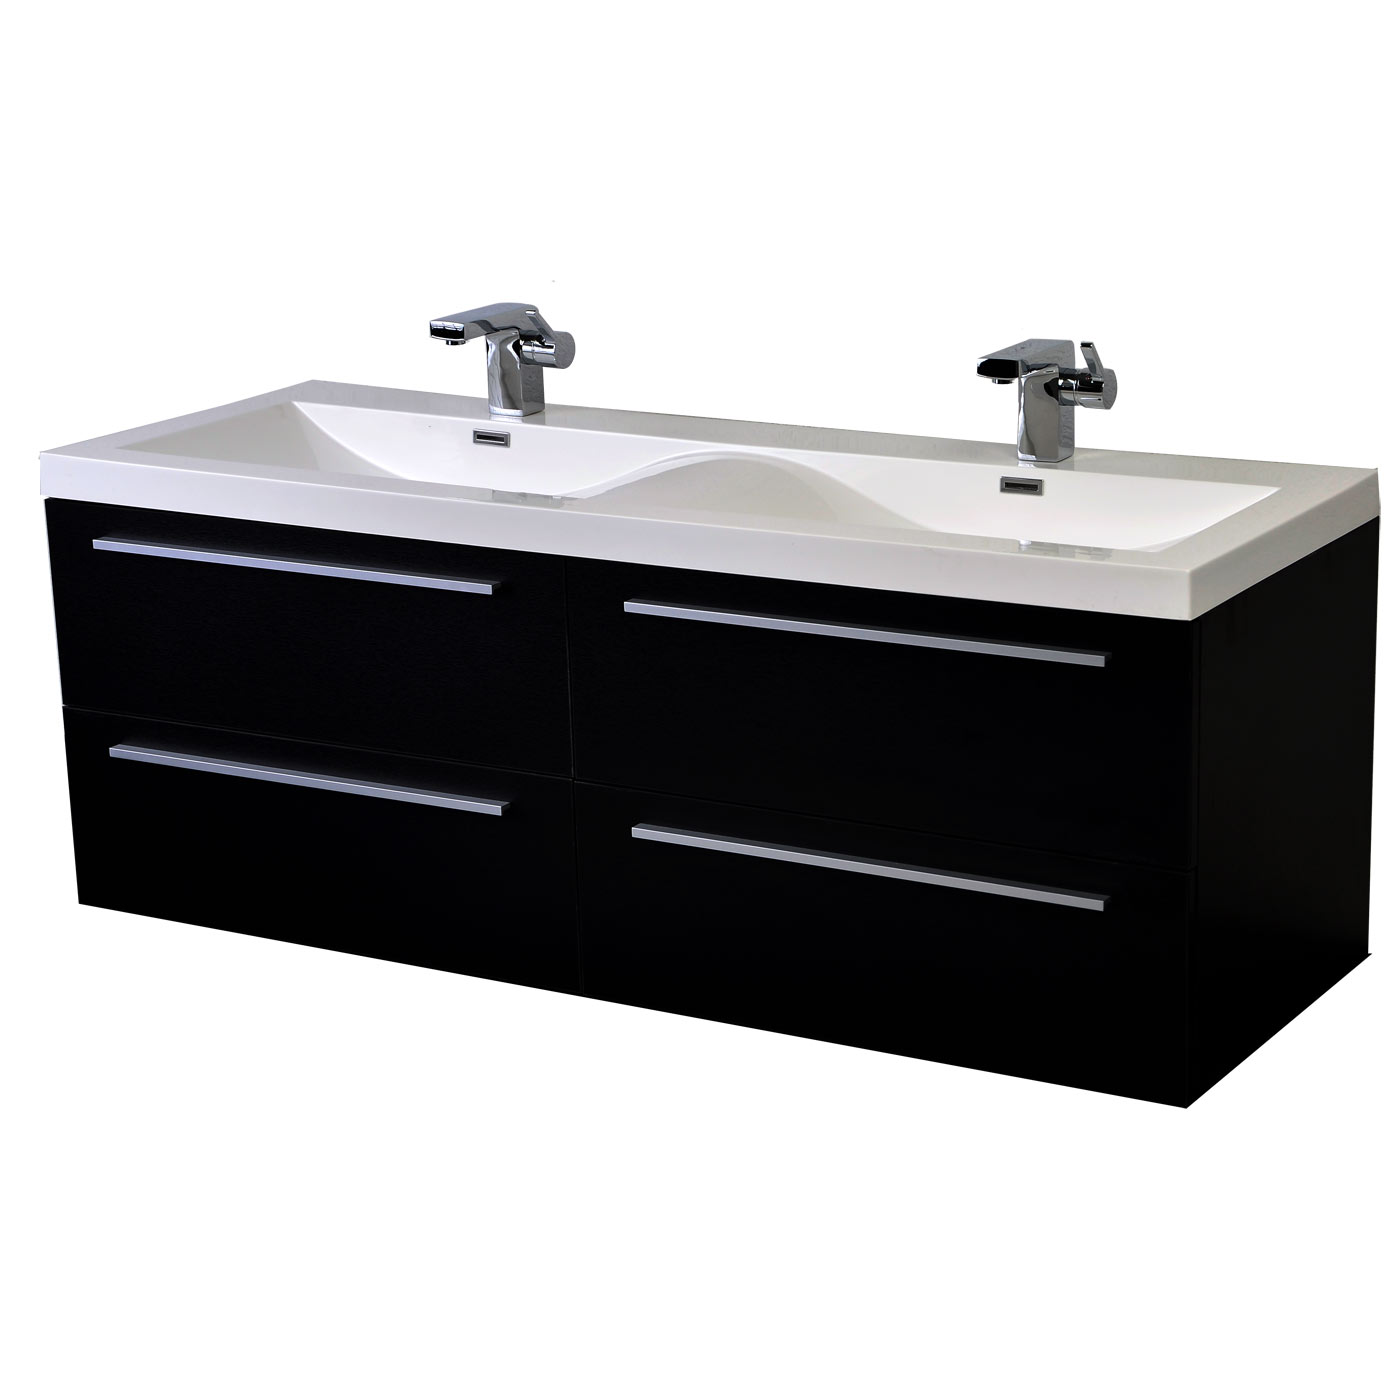 57 Inch Modern Double Sink Vanity Set With Wavy Sinks Black Tn B1440 Bk